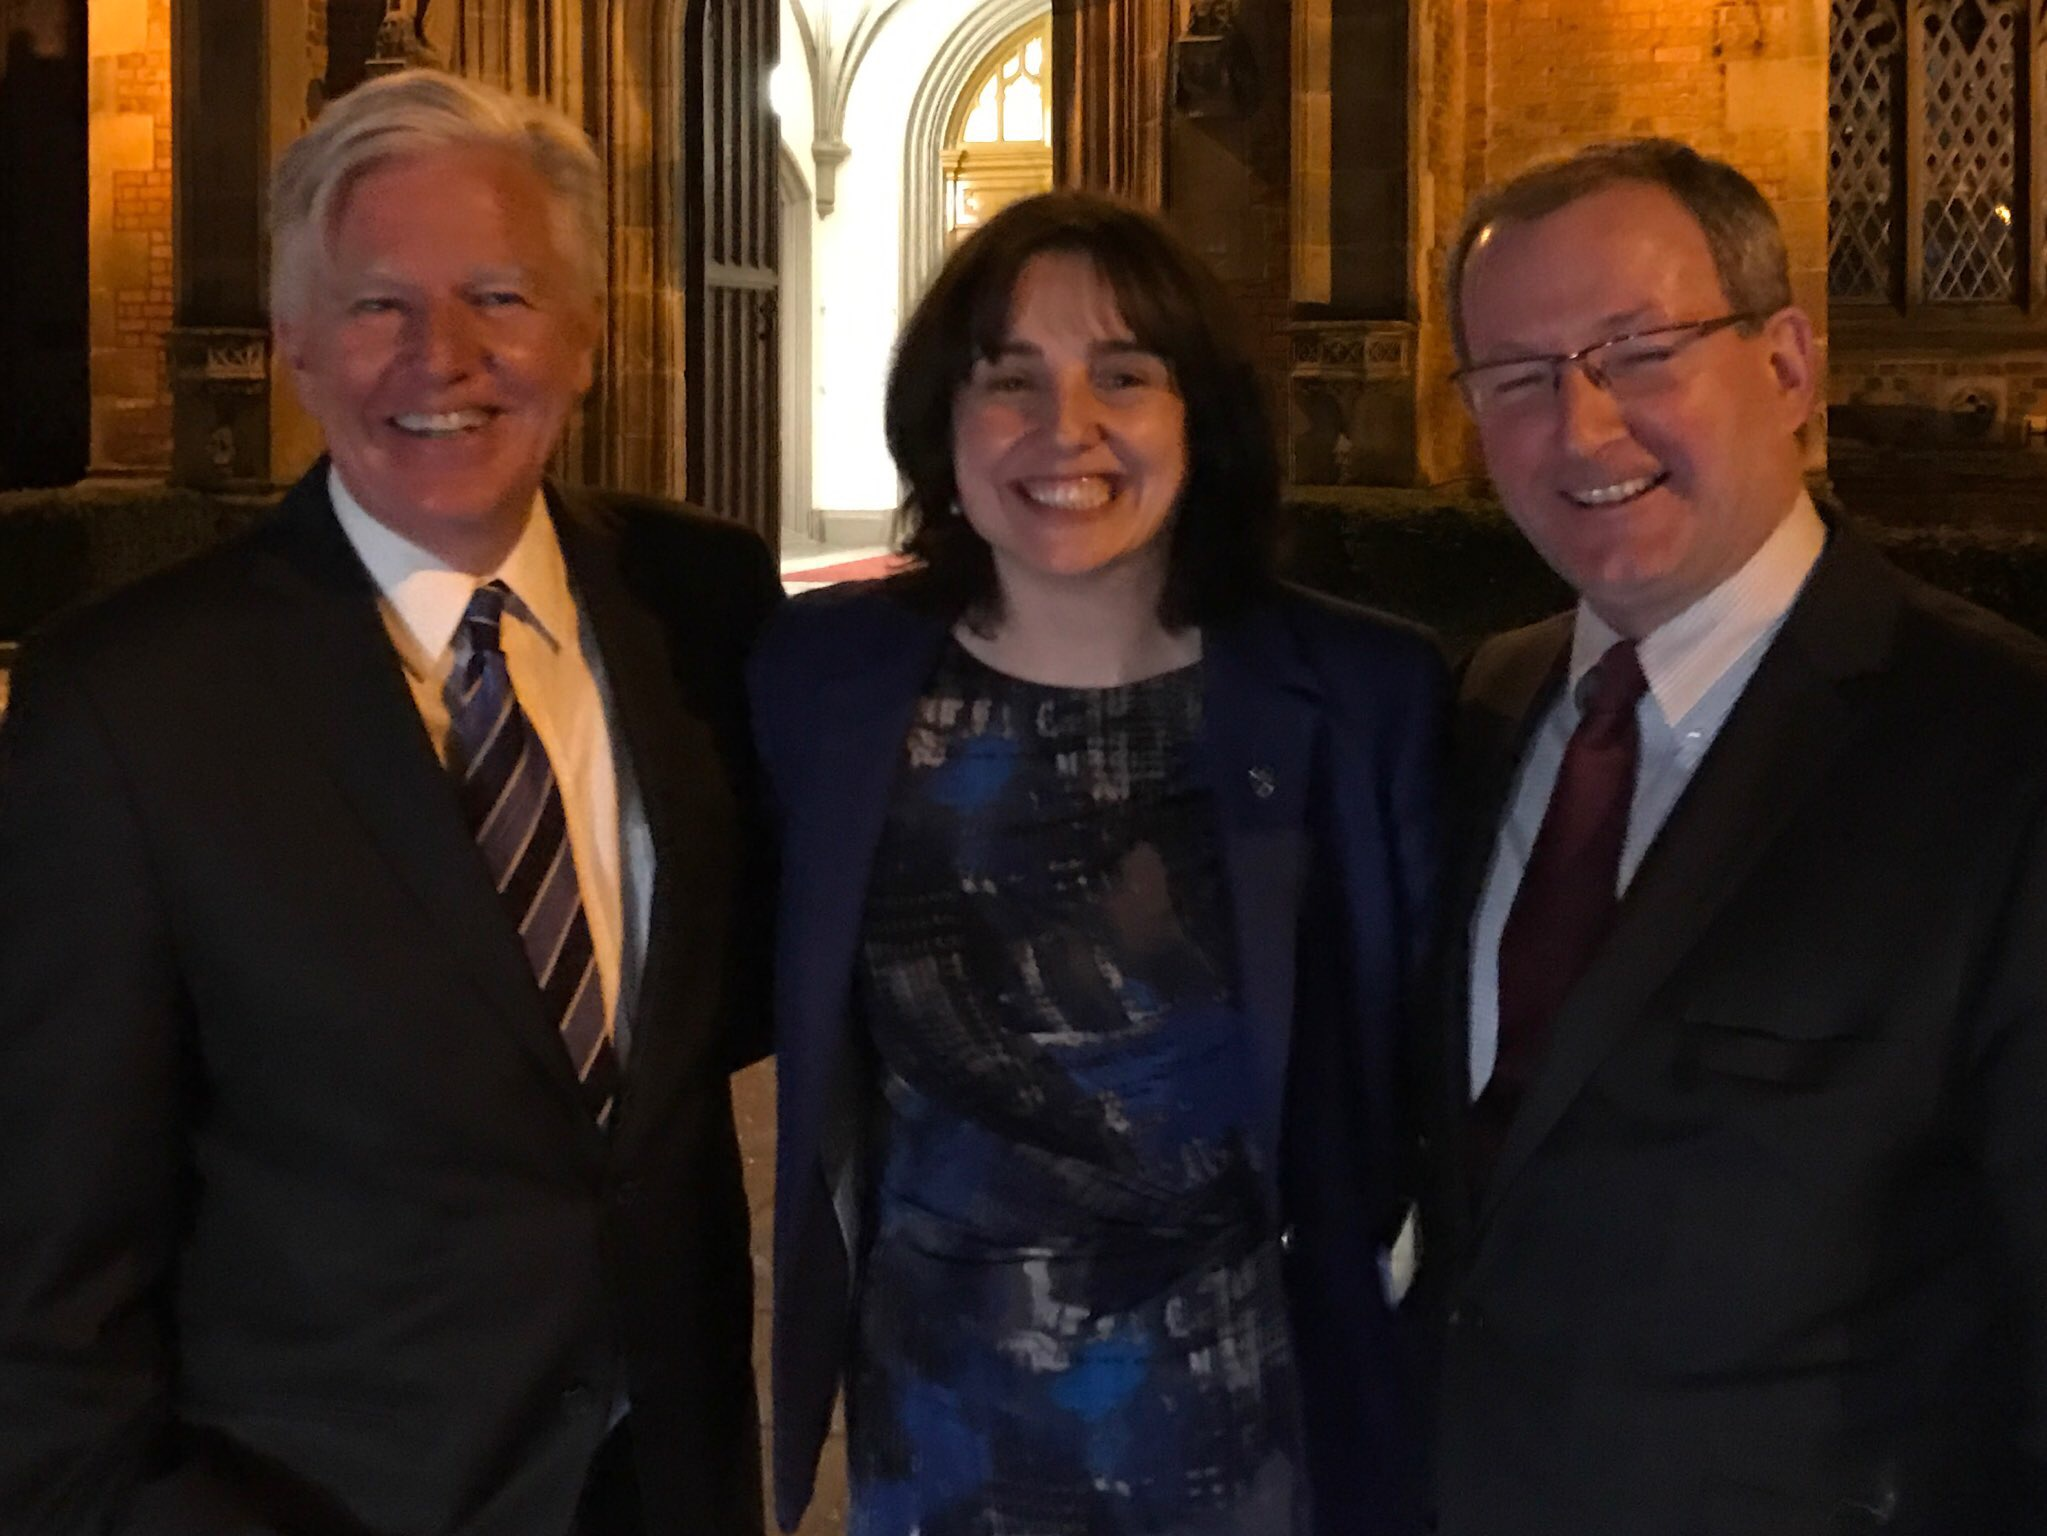 The late Paddy Johnston (right) with University of Massachusetts President Marty Meehan and Victoria Denoon of UMass Lowell during a visit to Queen's in late March of this year. I snapped this shot of Paddy with our visitors after a fun-filled dinner in honour of Marty Meehan.